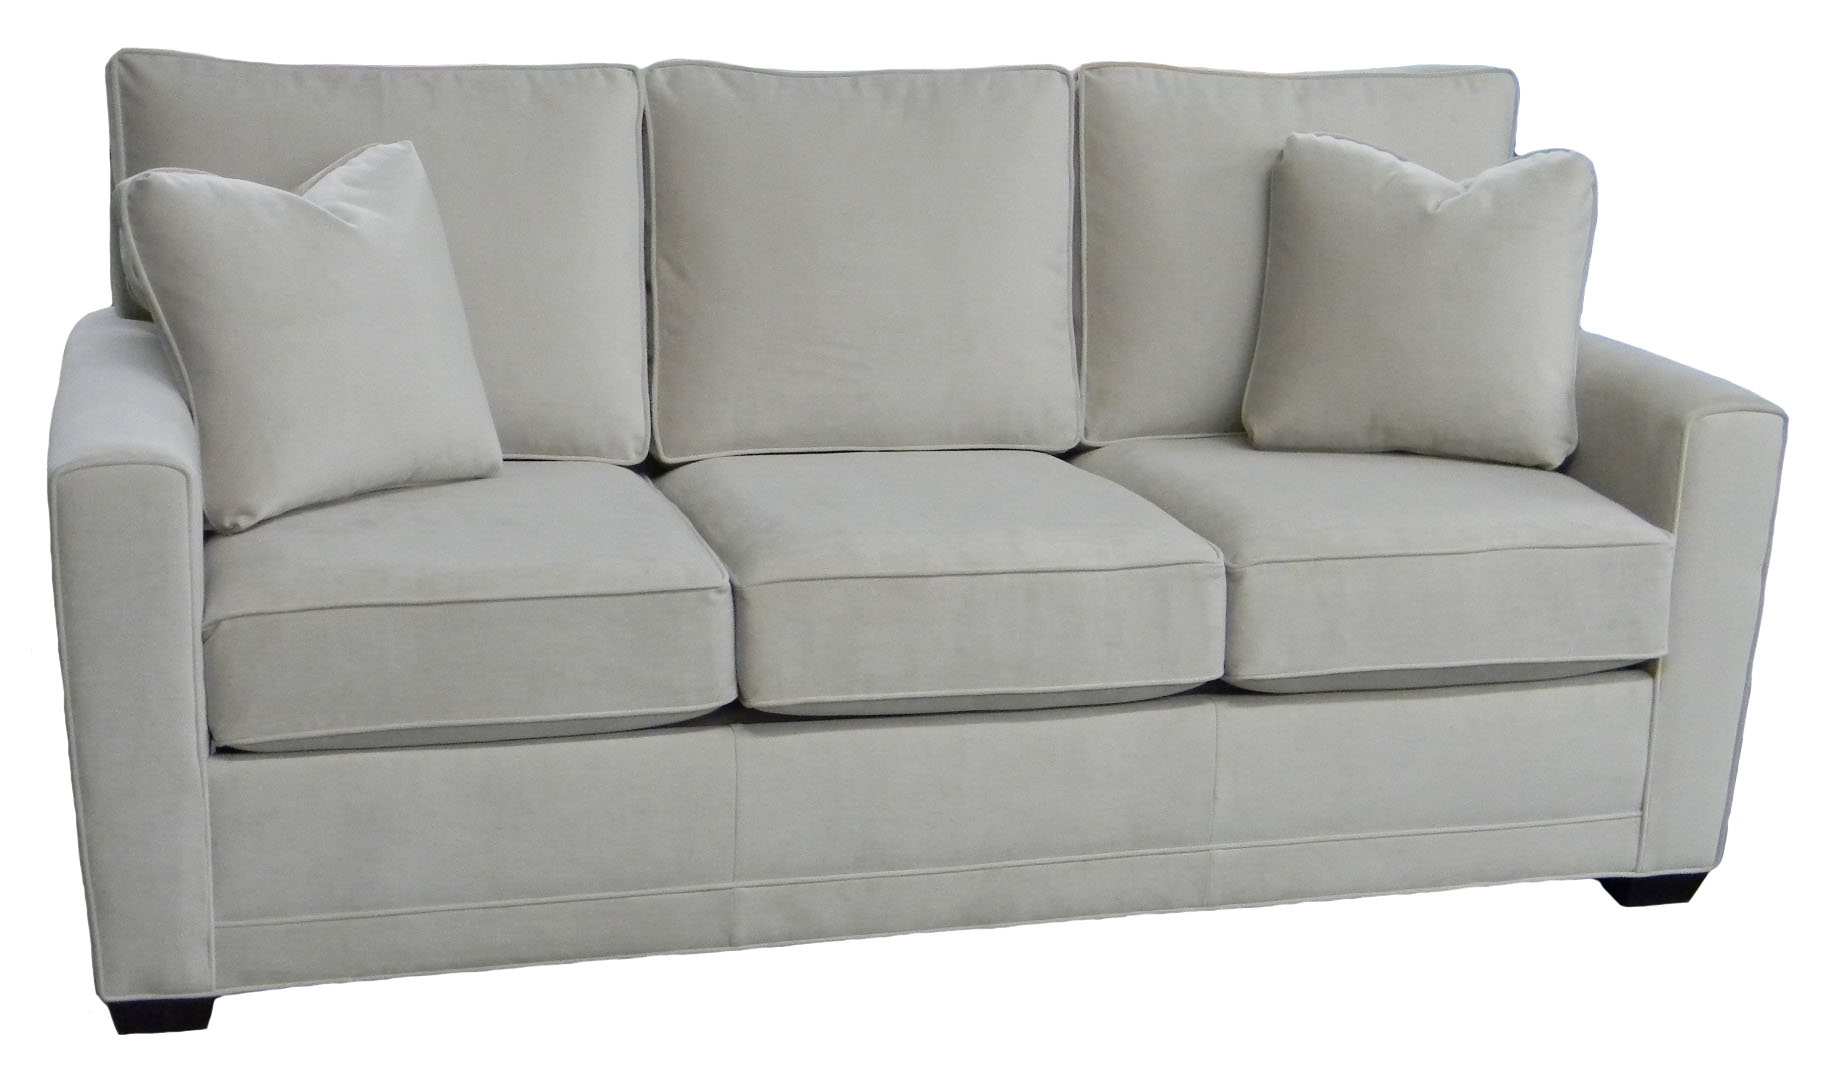 henley sofa and chair white leather cleaning tips couch carolina american made usa nc